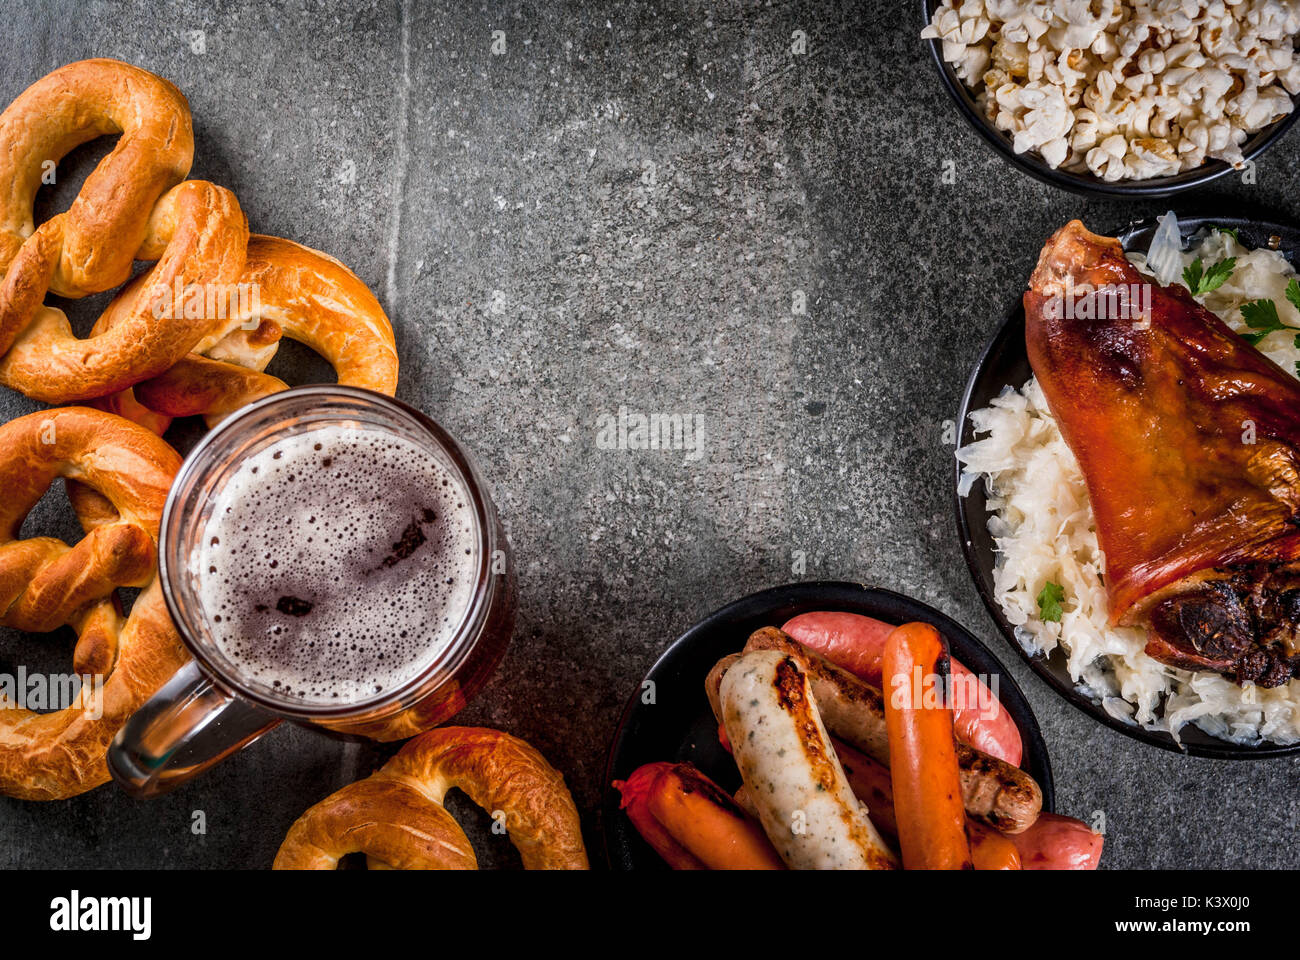 Selection of traditional german food oktoberfest beer baked pork selection of traditional german food oktoberfest beer baked pork shank popcorn assortment of different sausages homemade bretzels on a black sto forumfinder Choice Image